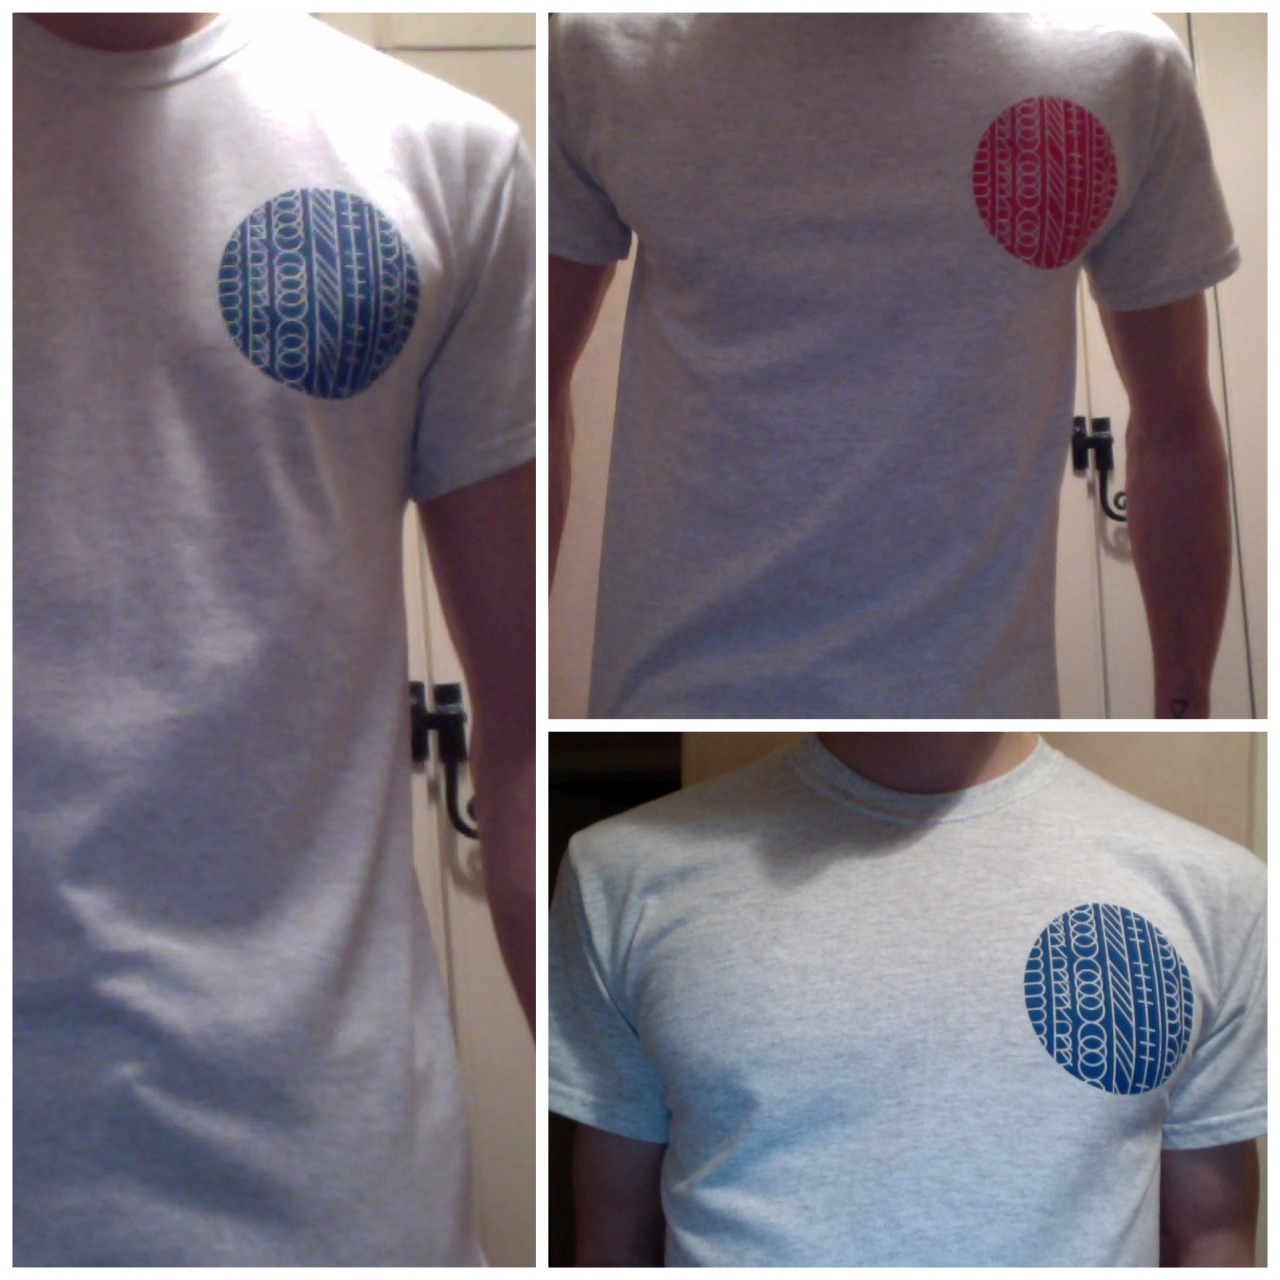 New T-Shirt available at our shows in Scotland next month. Red or Blue on ash grey